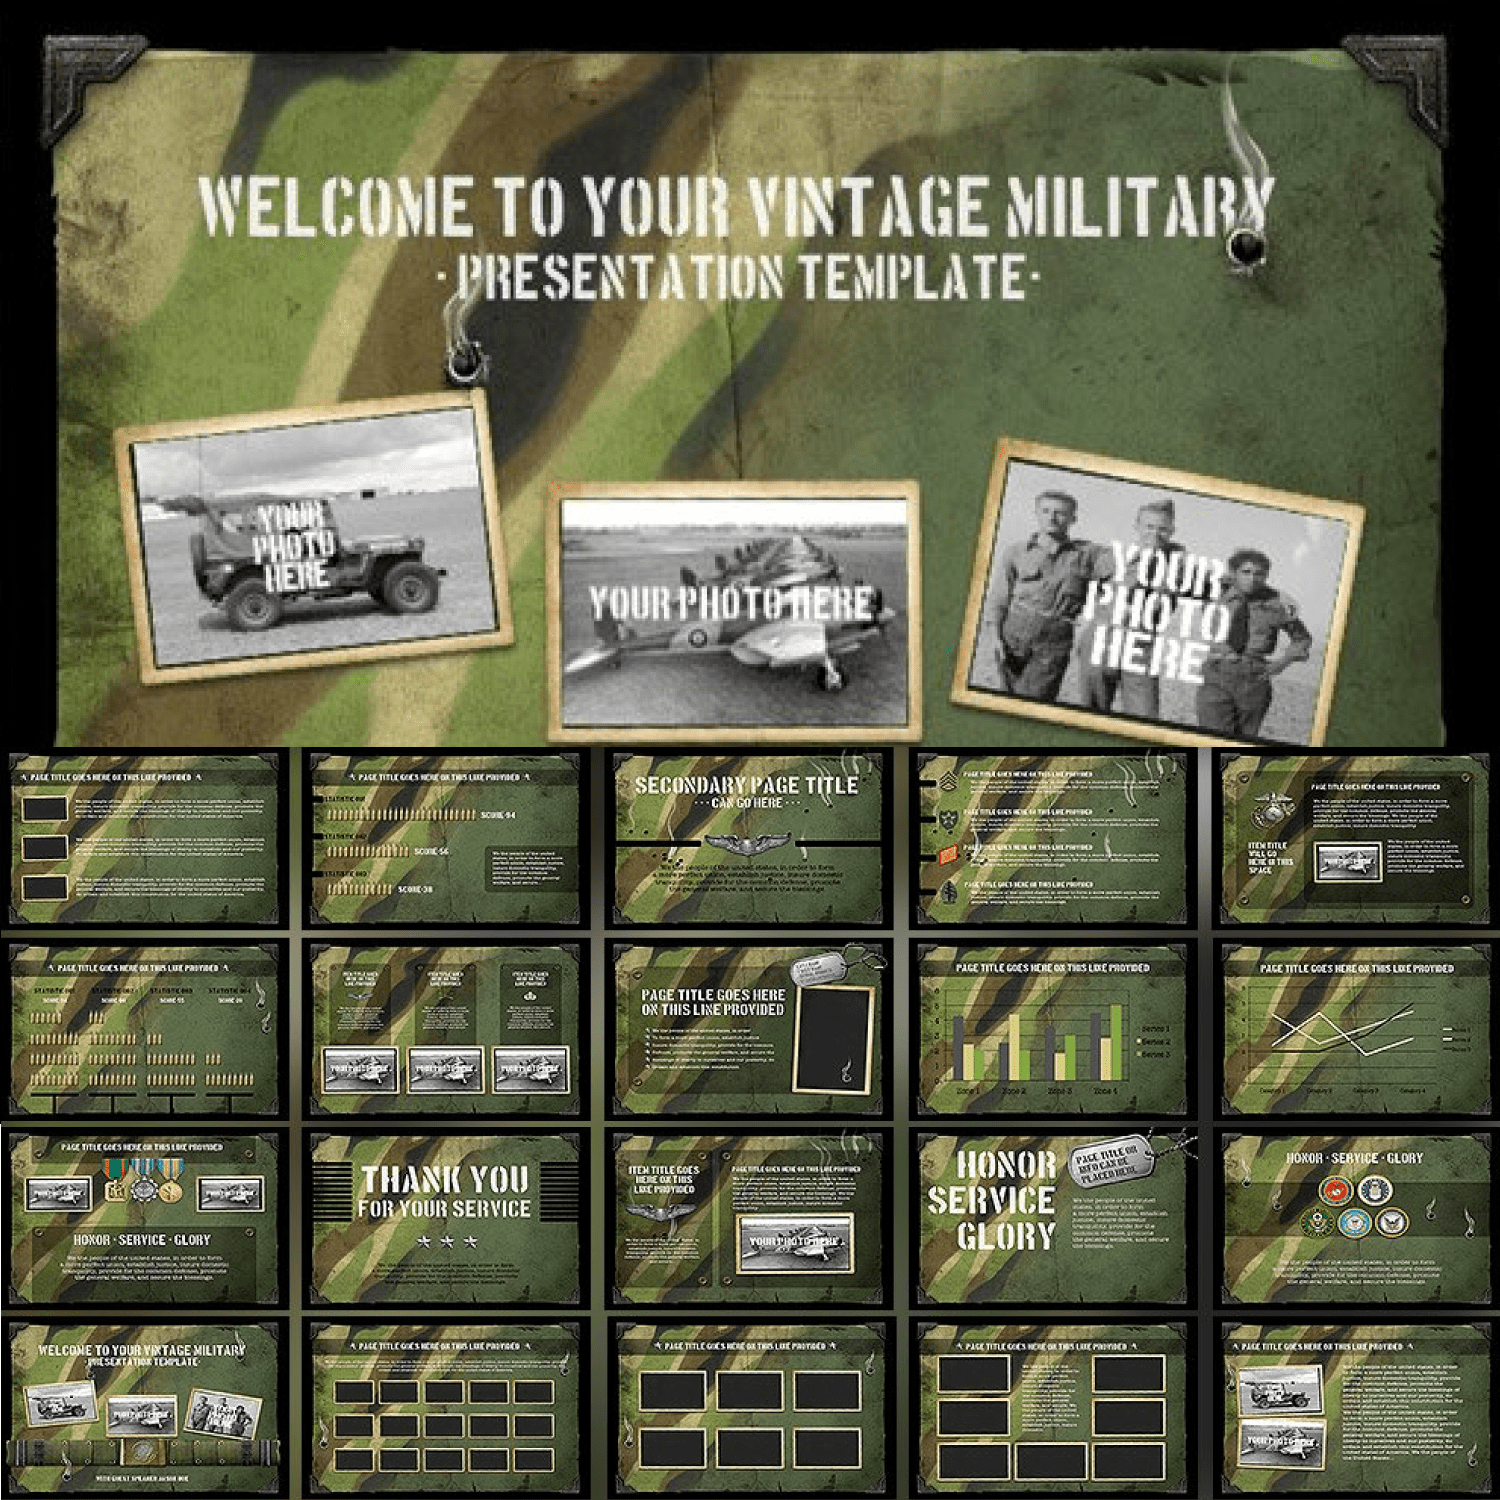 Vintage Military Powerpoint Template cover image.